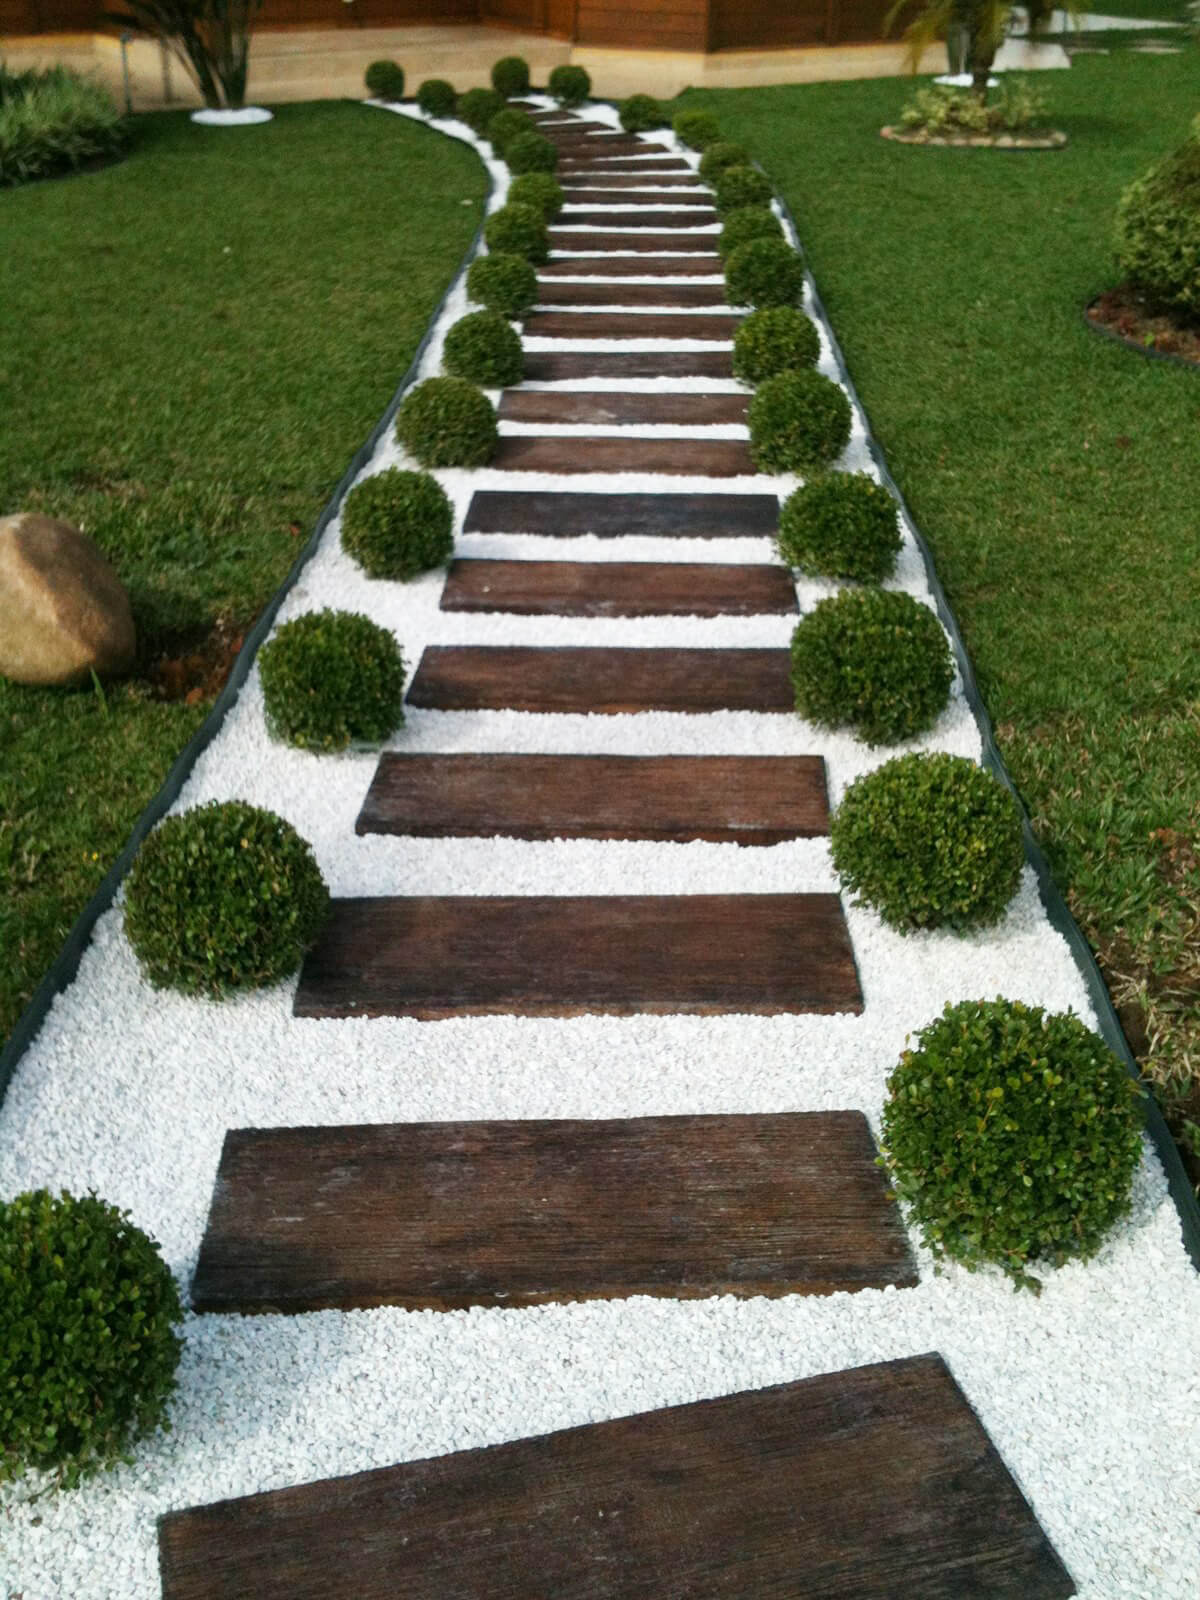 Backyard Pathway Ideas garden path ideas 1 Clean Stone And Wood Ladder Effect